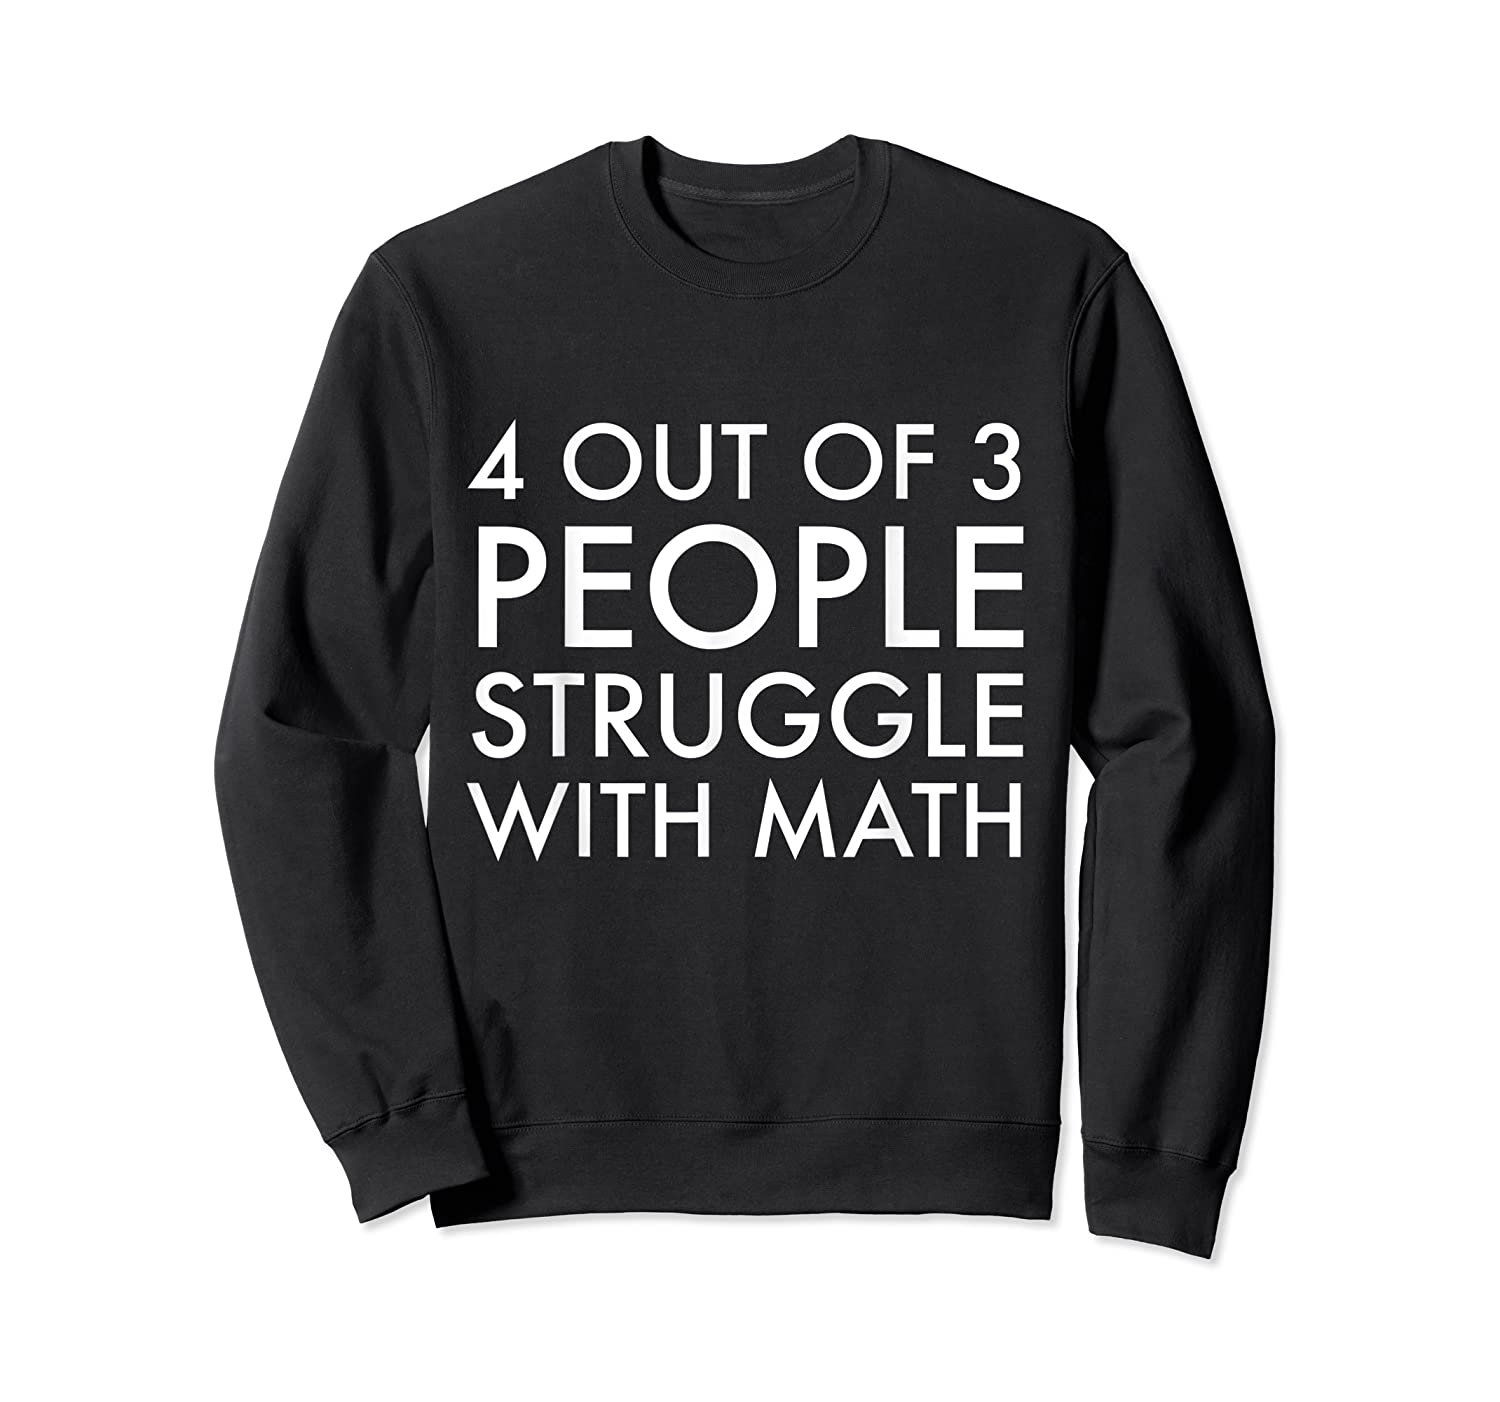 4 Out Of 3 People Struggle With Math T-shirt Geek Nerd Tee Crewneck Sweater